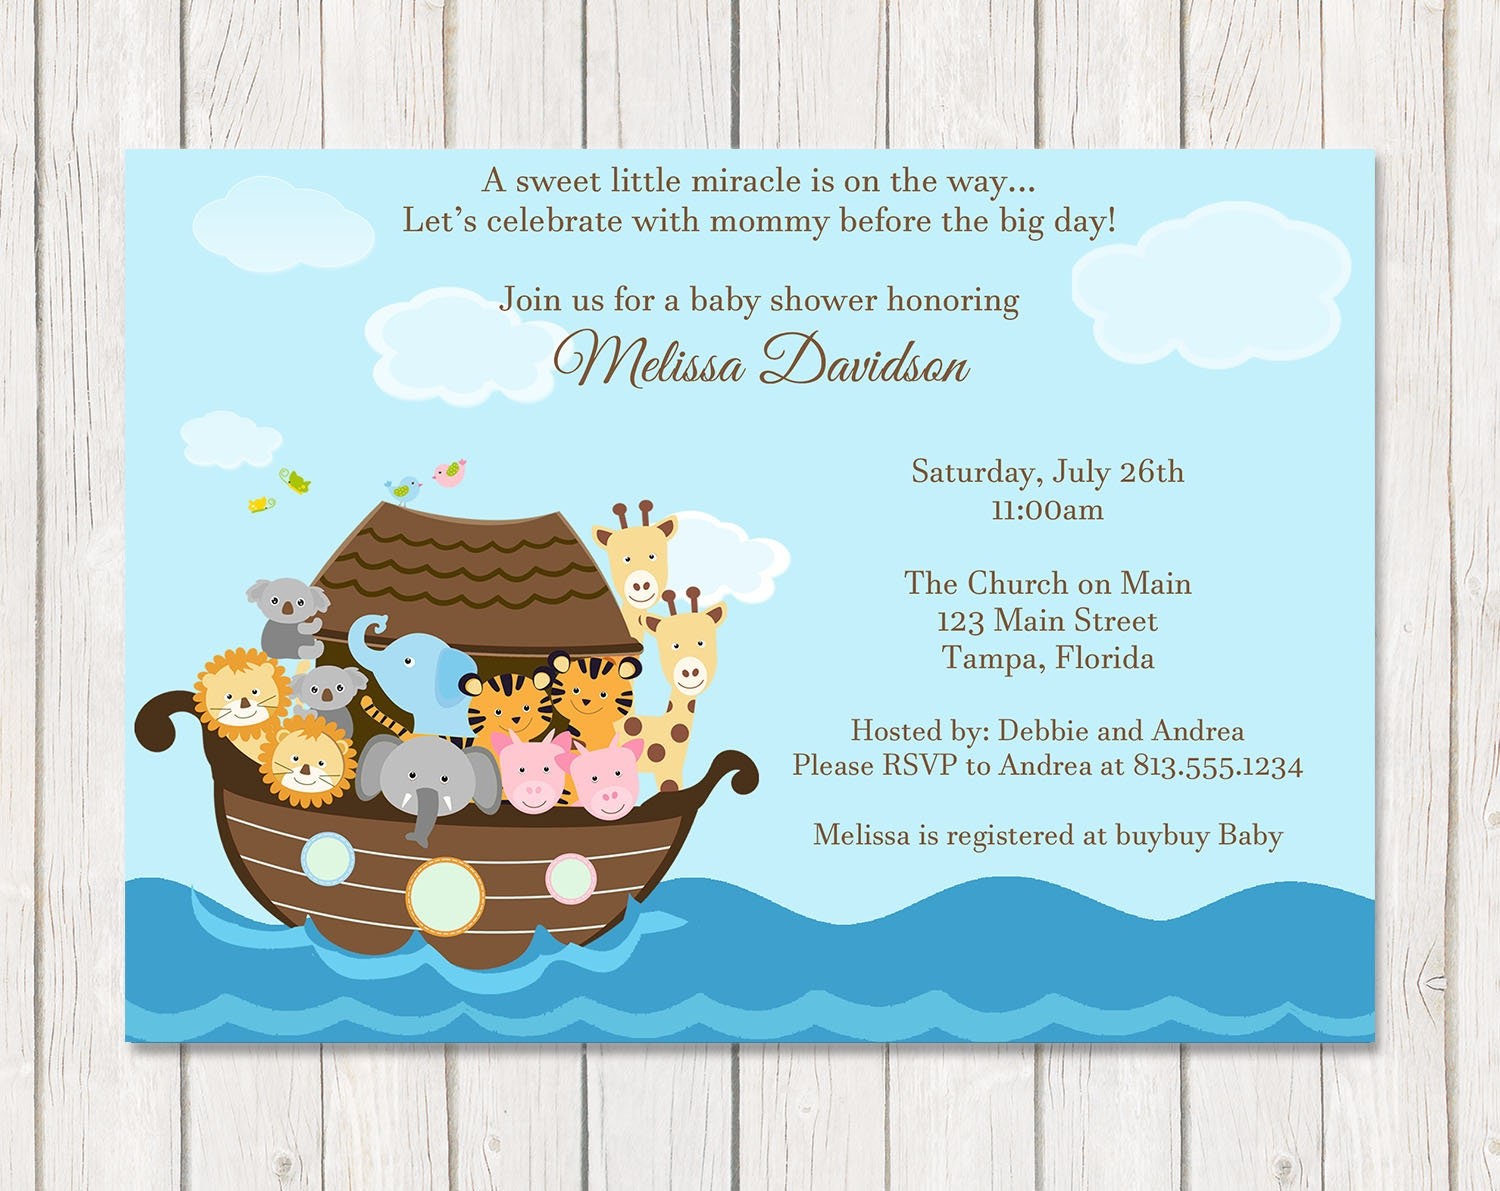 Noah's Ark Baby Shower Invitation, Miracle, Religious, Gender Neutral,  Twins, Two by Two, Christian, Printable, Customized Digital Invite